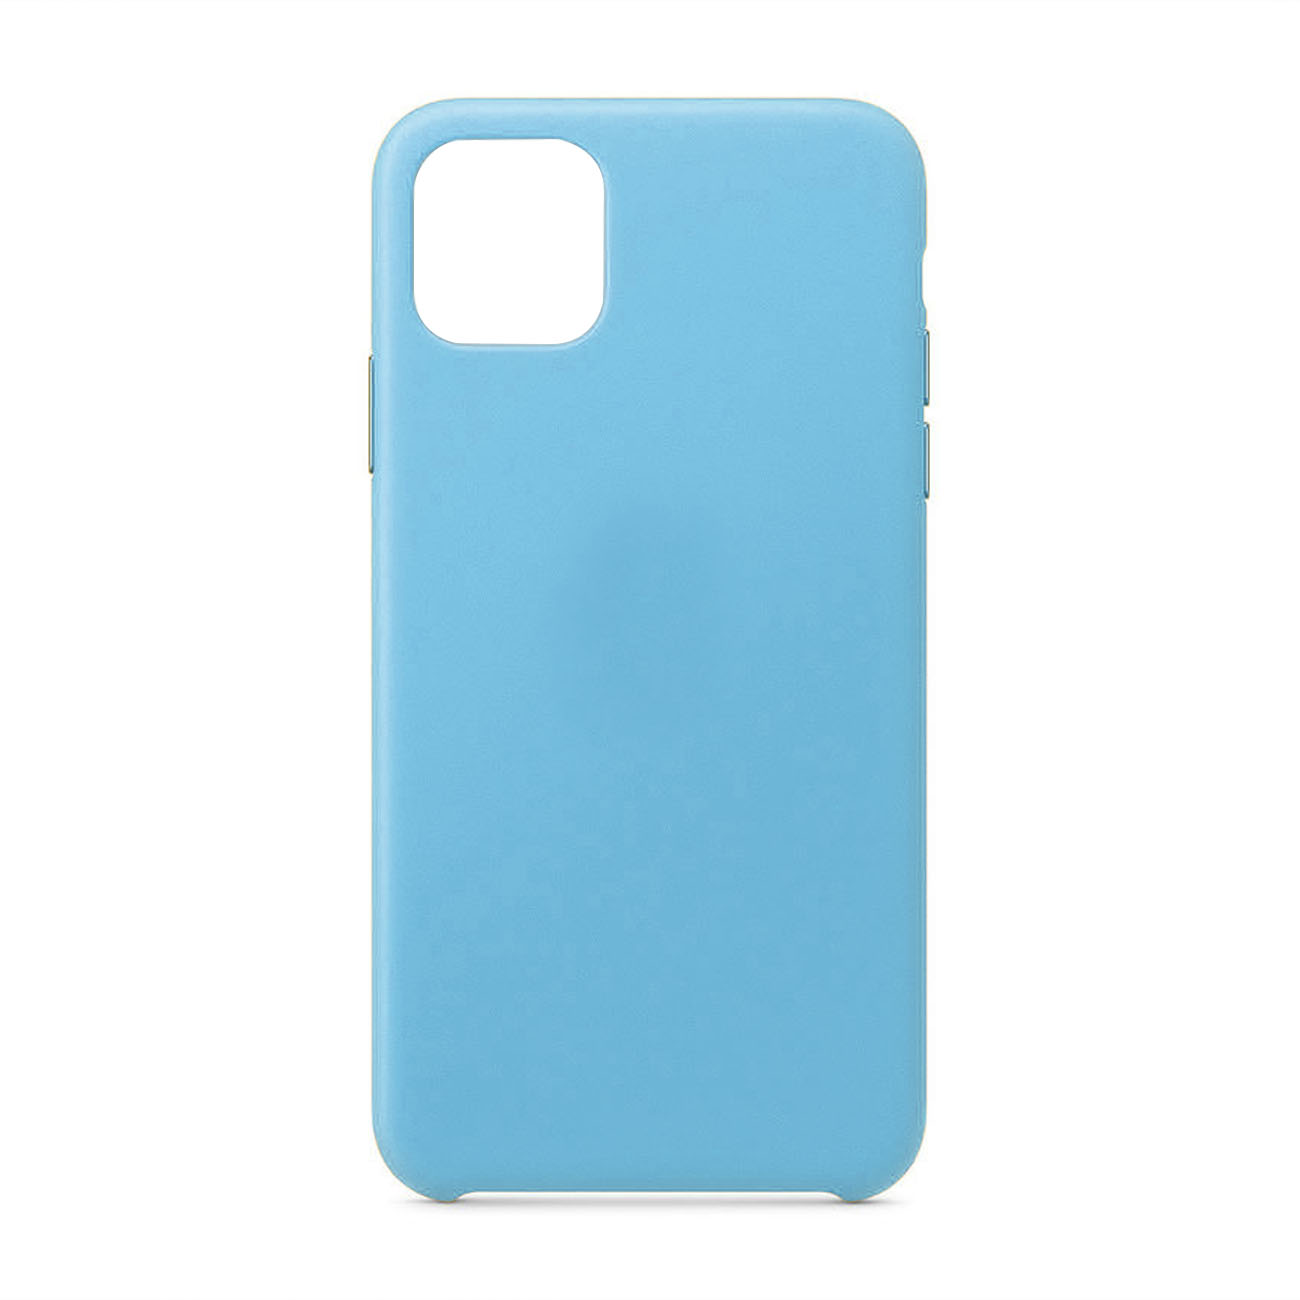 Reiko Apple iPhone 11 Gummy Cases In Blue